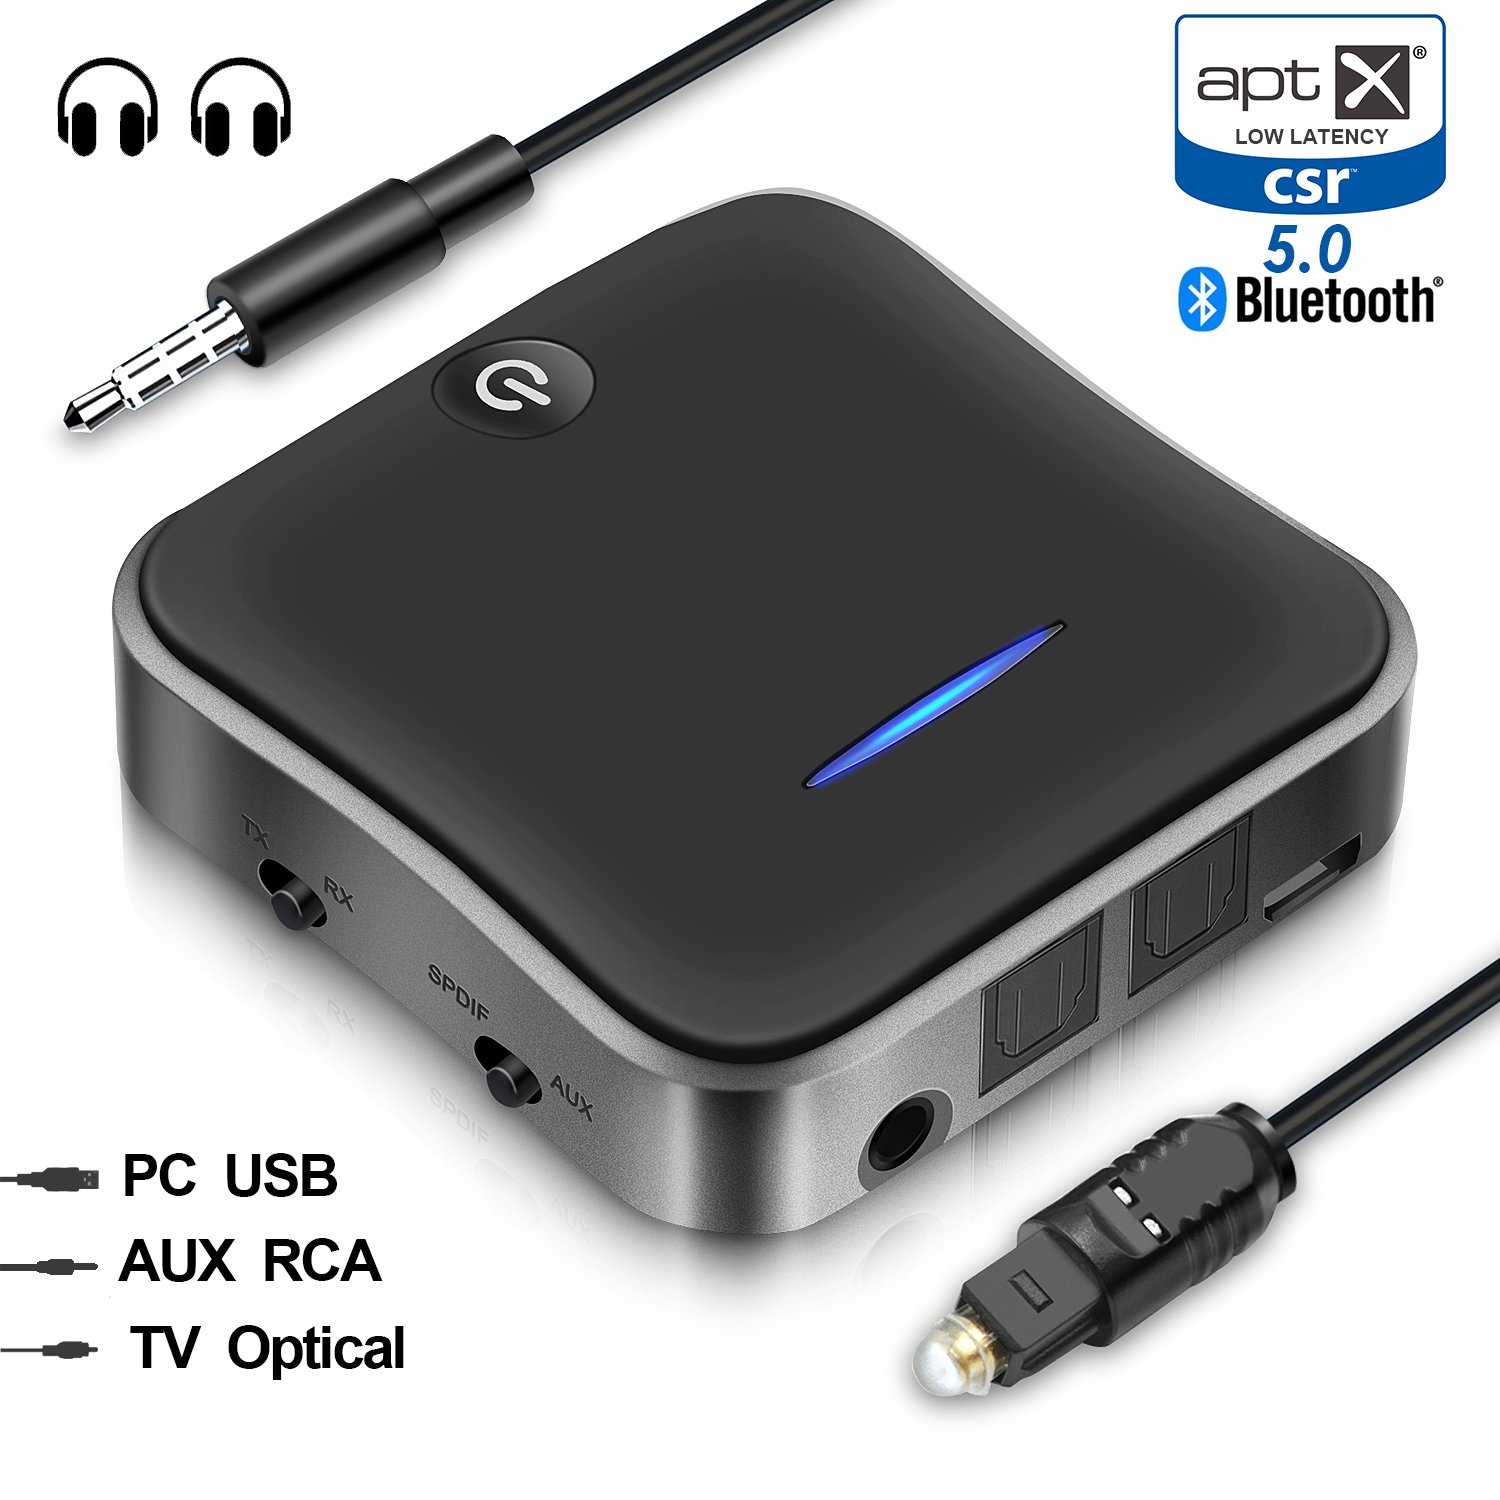 Wsiiroon Bluetooth 5.0 Transmitter Receiver, 2-in-1 Wireless aptXHD Low Latency Bluetooth Audio 3.5mm & Optical Adapter for Home/Car Stereo System (2 Devices Simultaneously) by wsiiroon